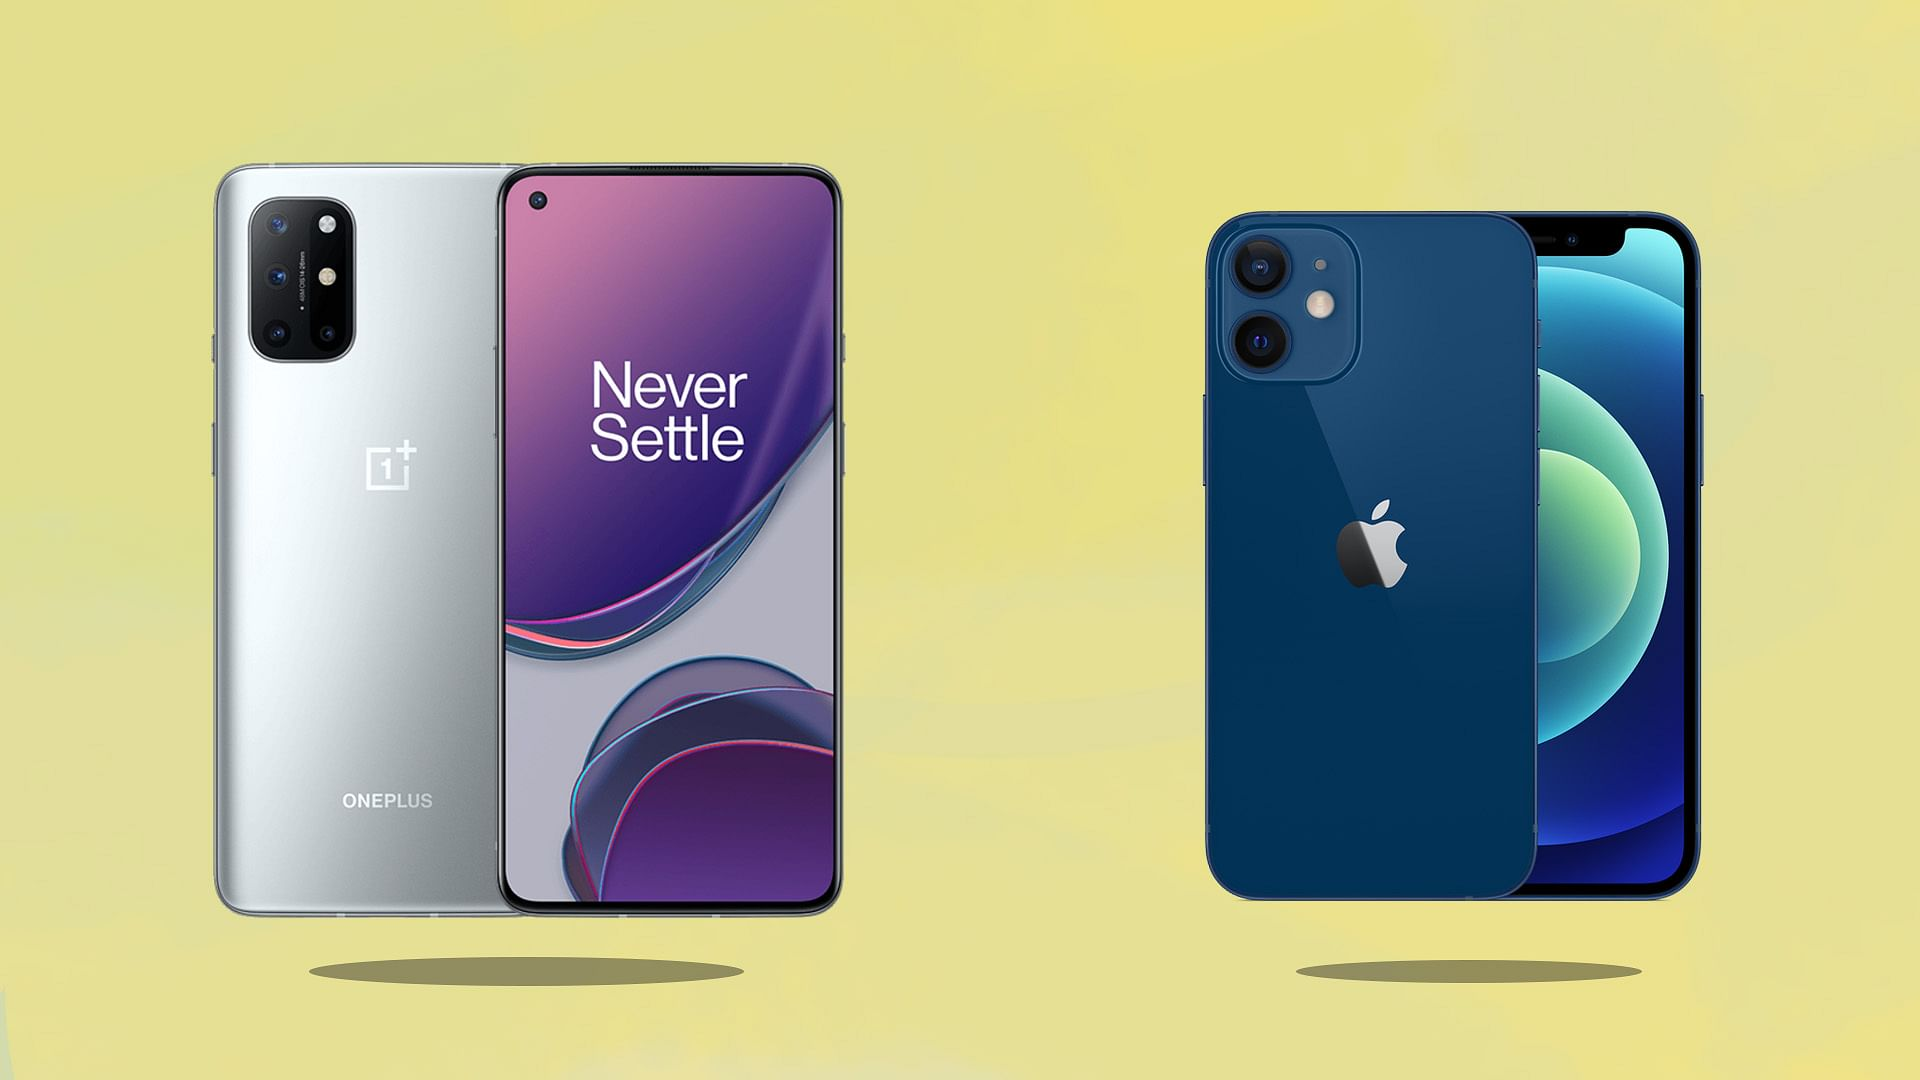 Iphone 12 Mini Vs Oneplus 8t Comparison Specifications Images Camera Battery More